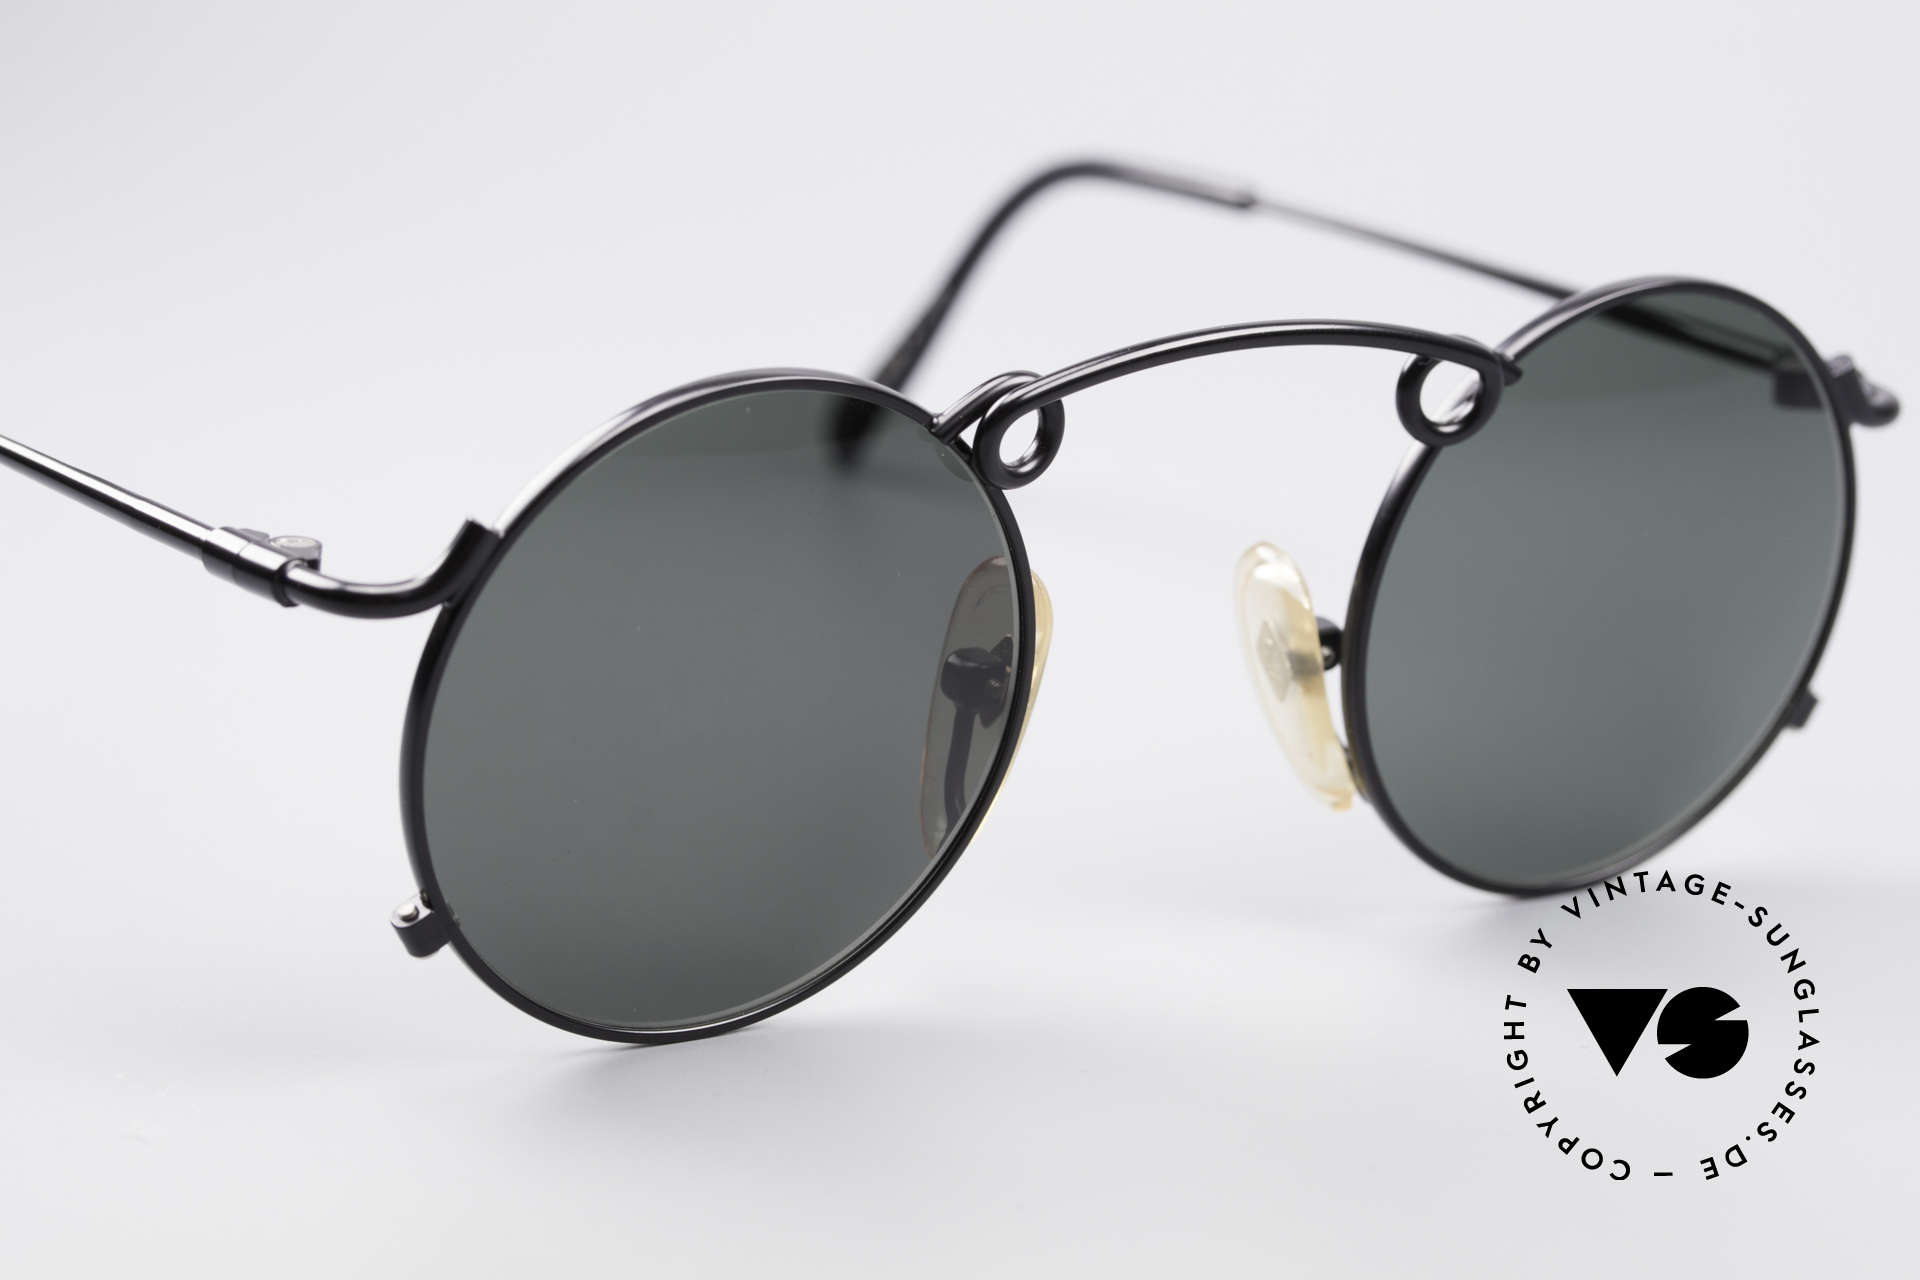 Jean Paul Gaultier 56-1178 Artful Panto Sunglasses, NO RETRO shades, but an authentic old 90s Original!, Made for Men and Women